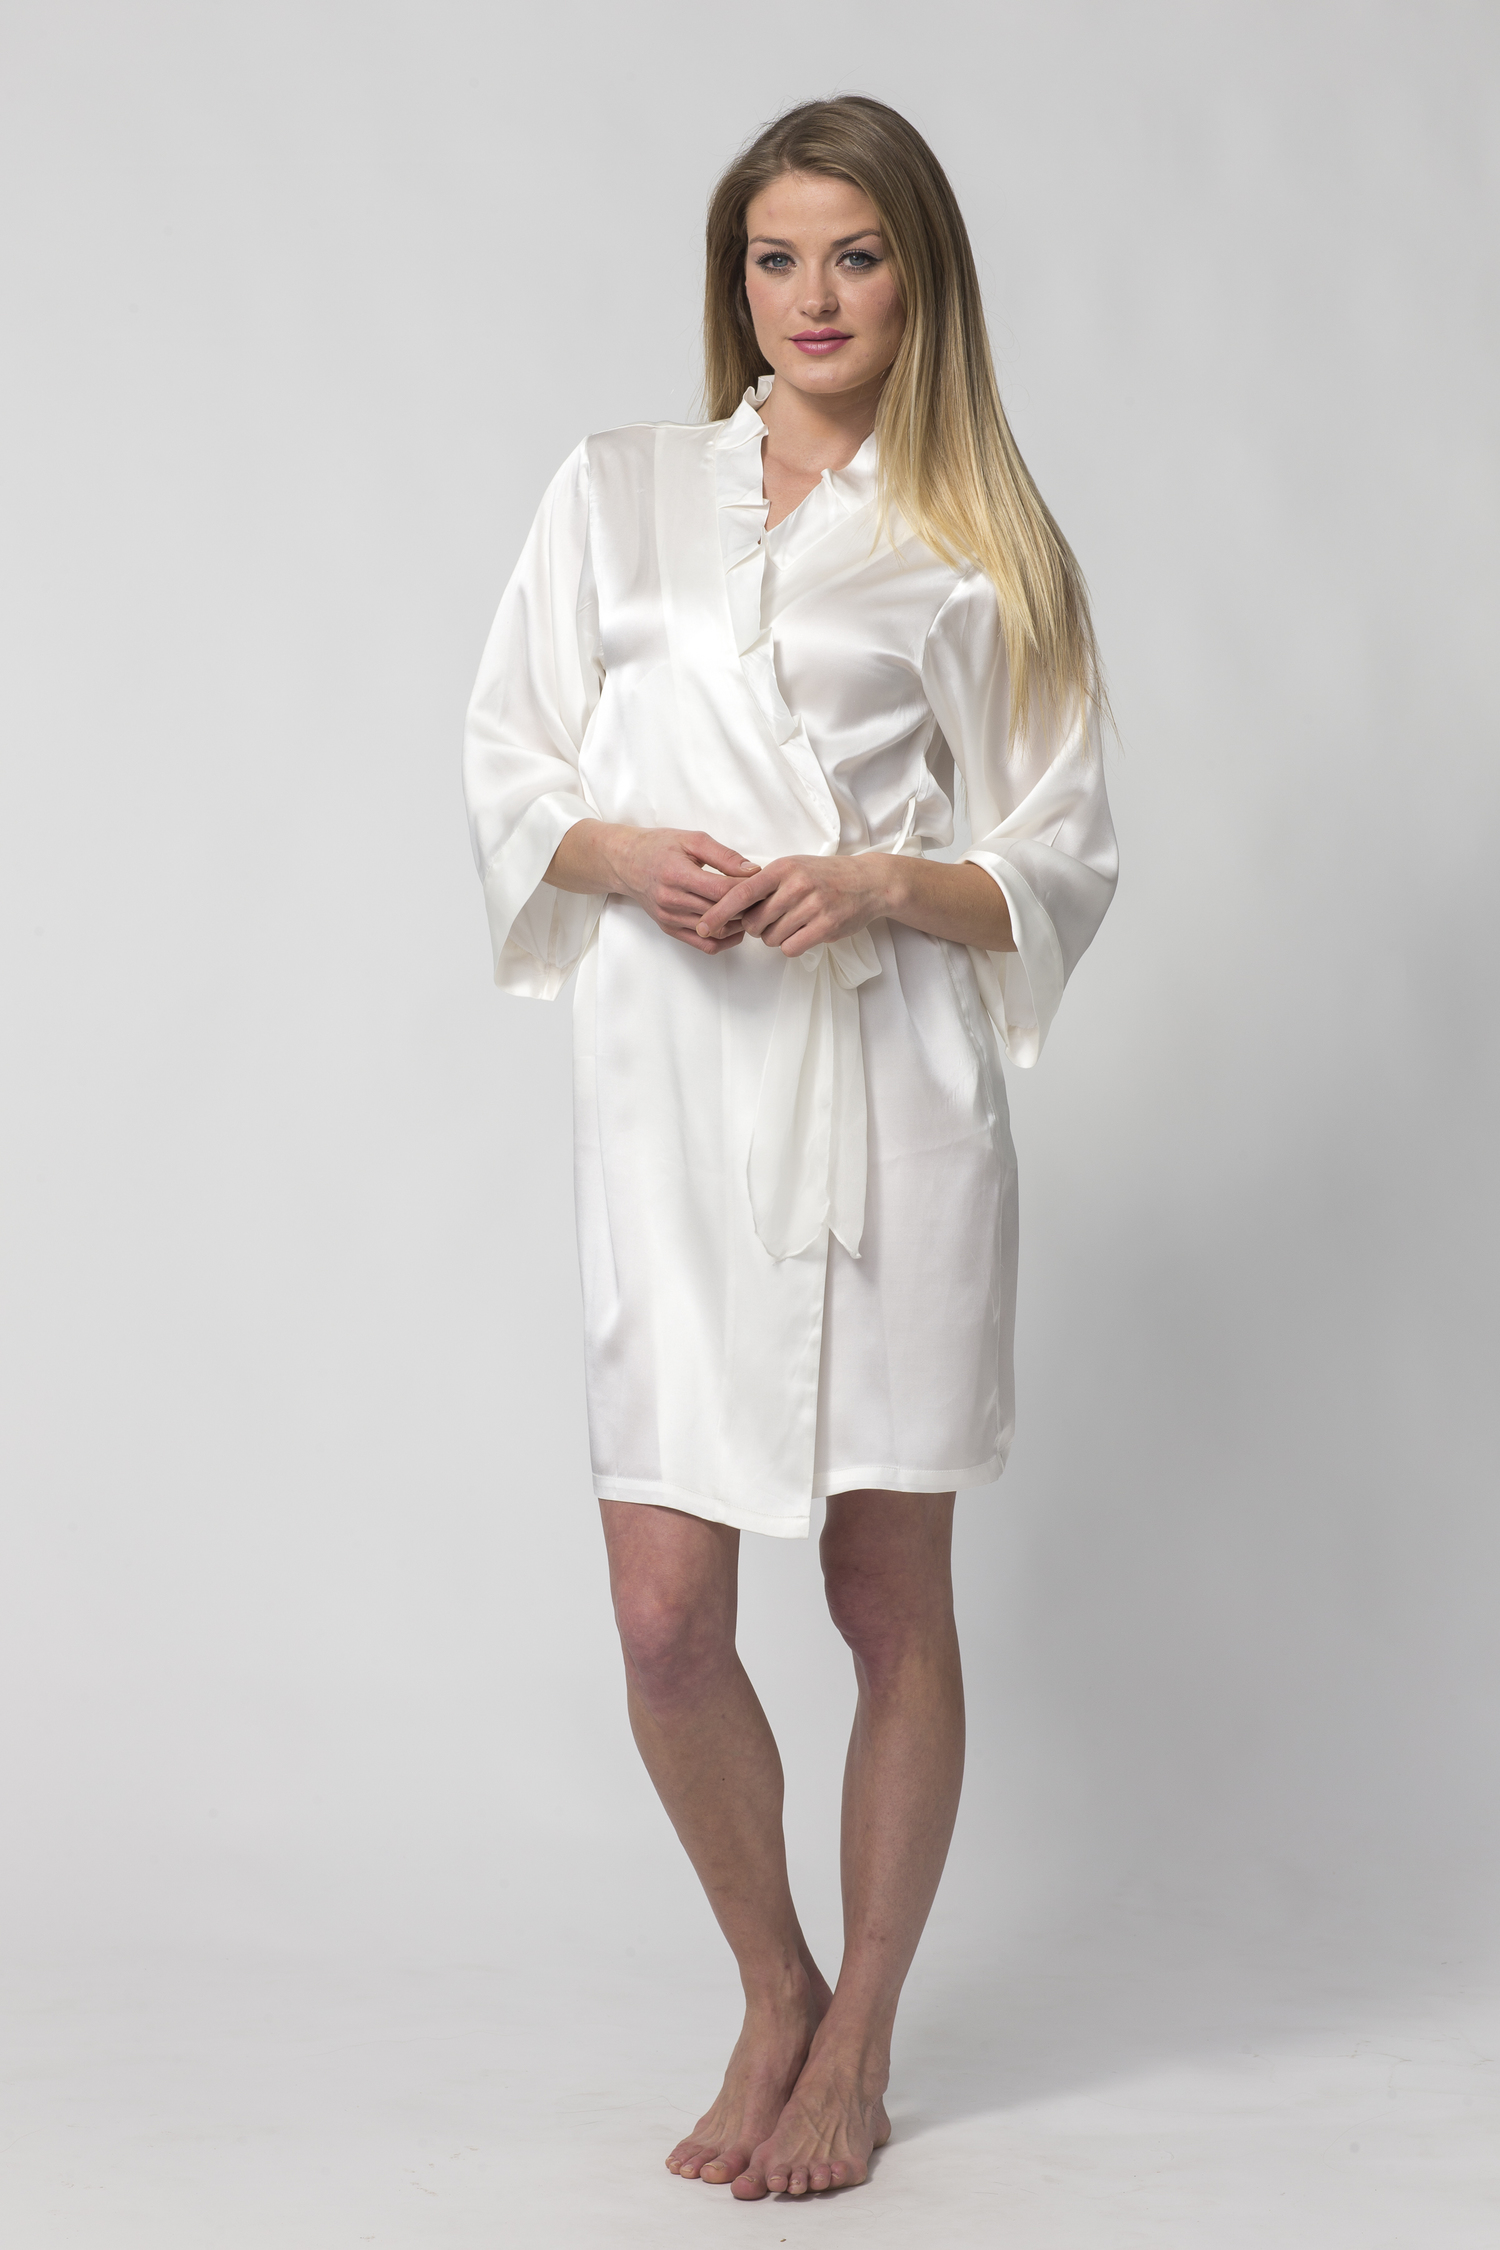 a81583c3d8 Women s Short White Silk Robe with Ruffled Collar-Silk Charmeuse — Dynasty  Robes